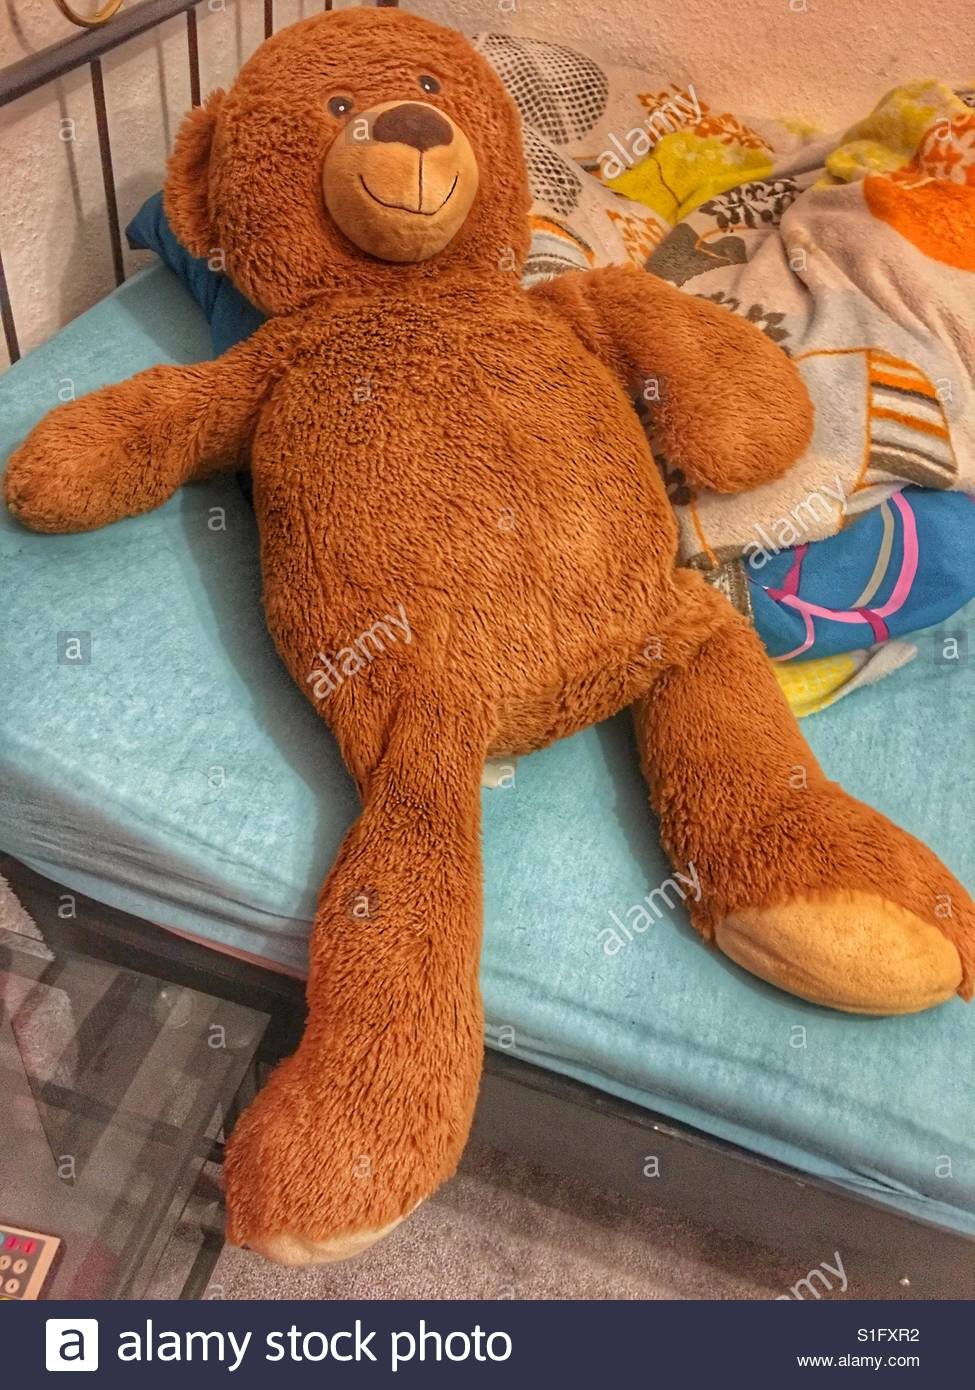 Very big teddy bear on a messy bed - Stock Image